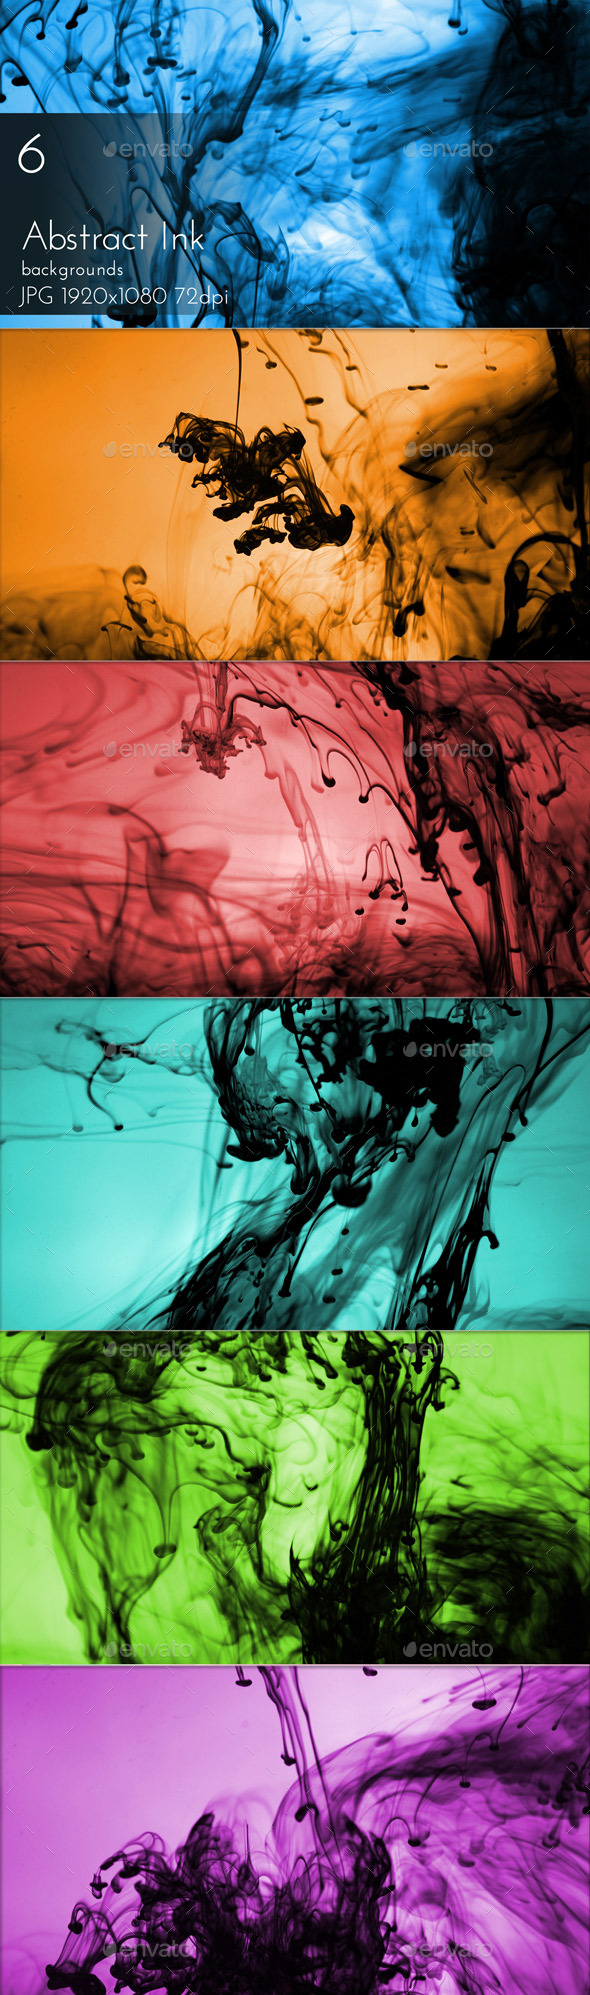 Abstract Ink Background